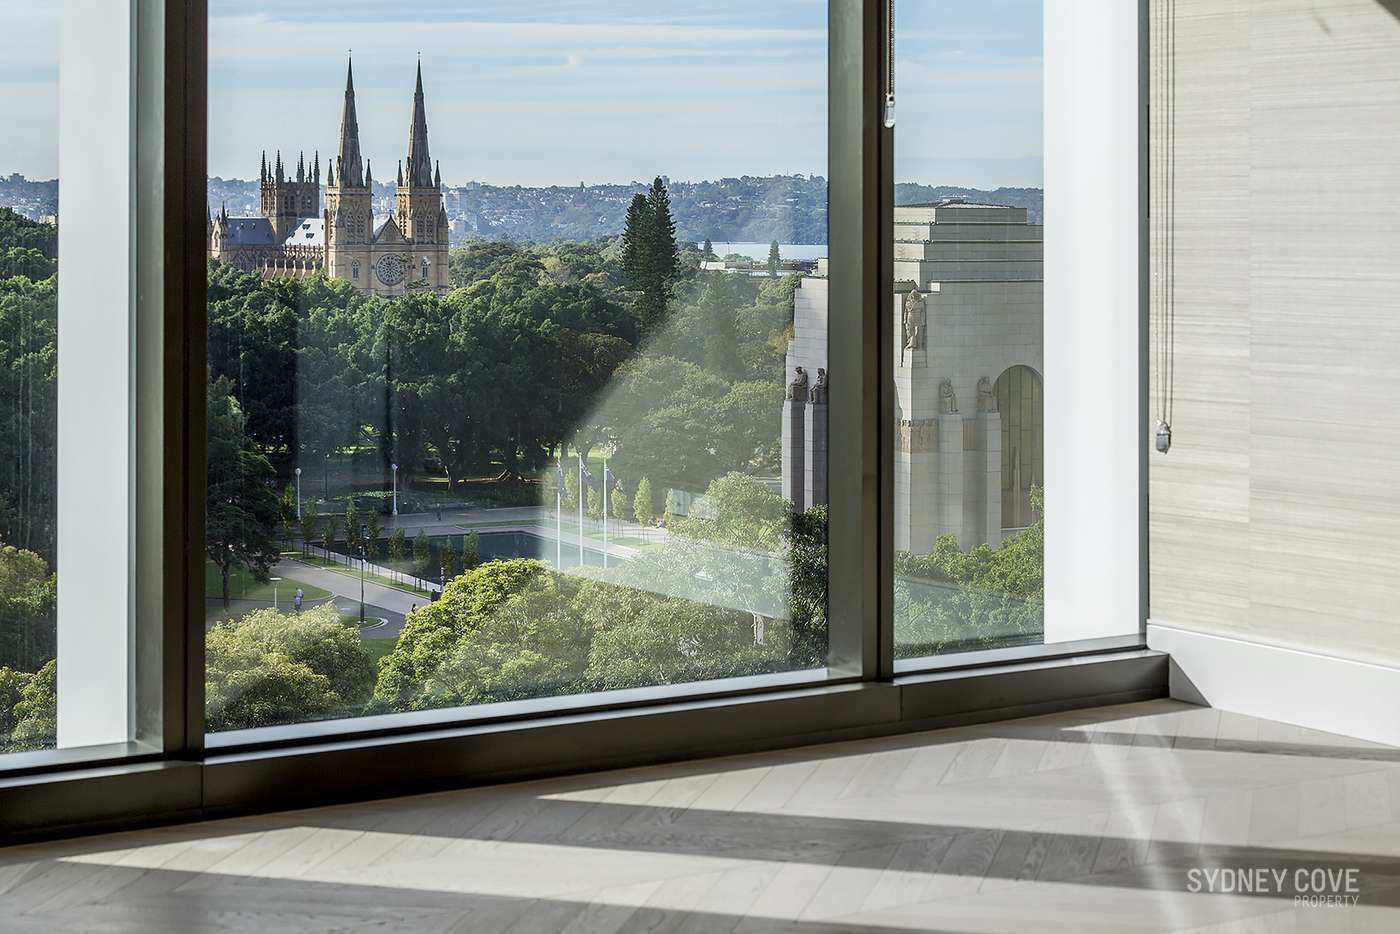 Main view of Homely apartment listing, 130 Elizabeth St, Sydney NSW 2000